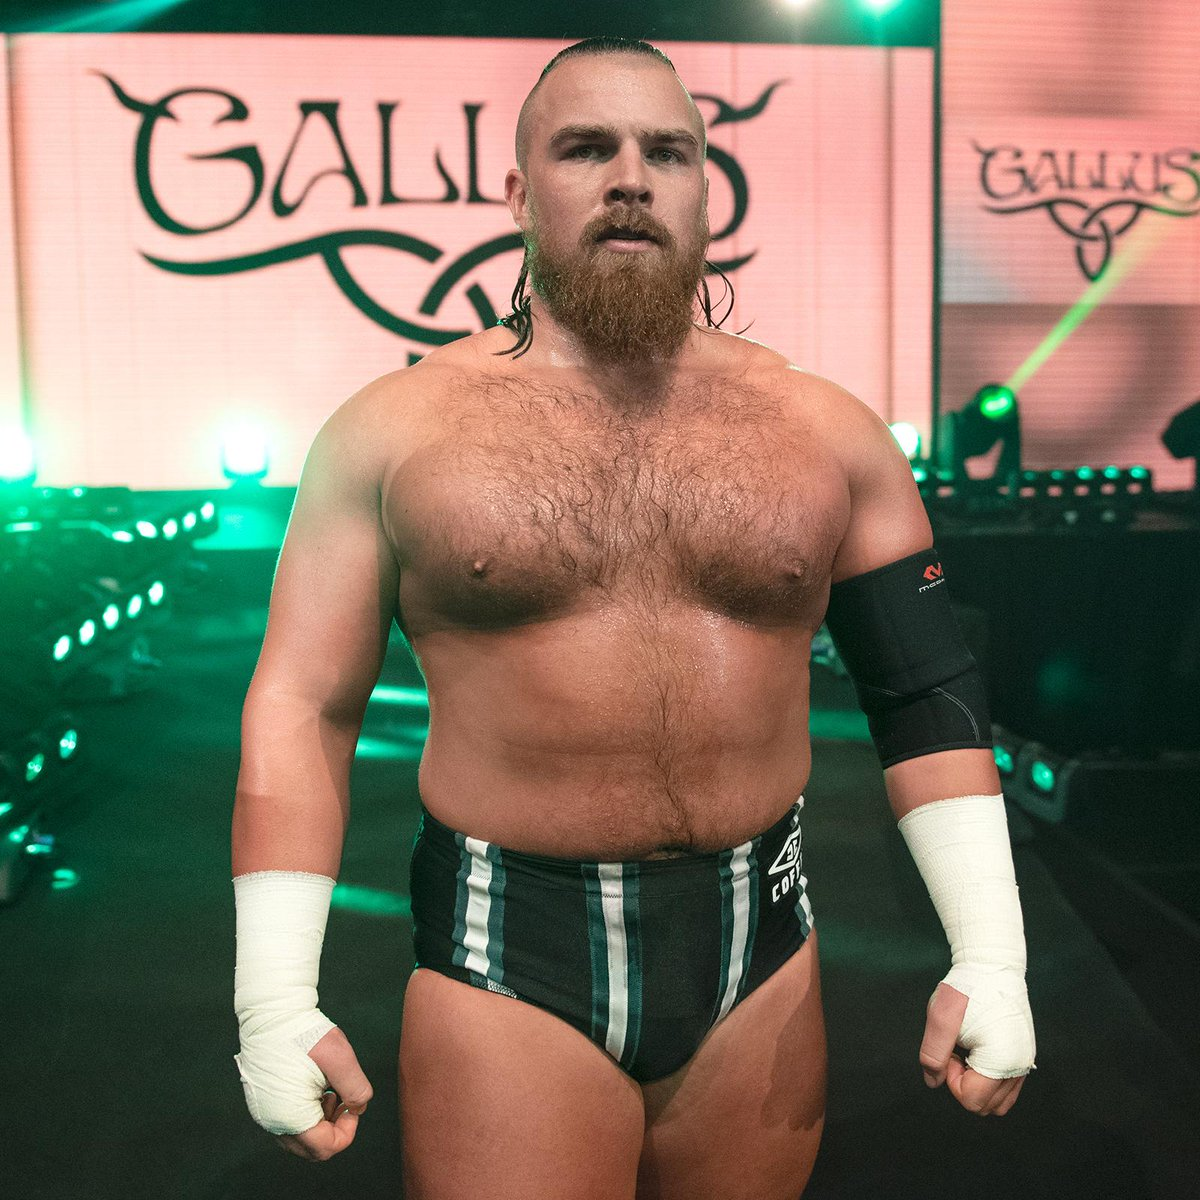 Wishing a GALLUS birthday to The #IronKing @Joe_Coffey!